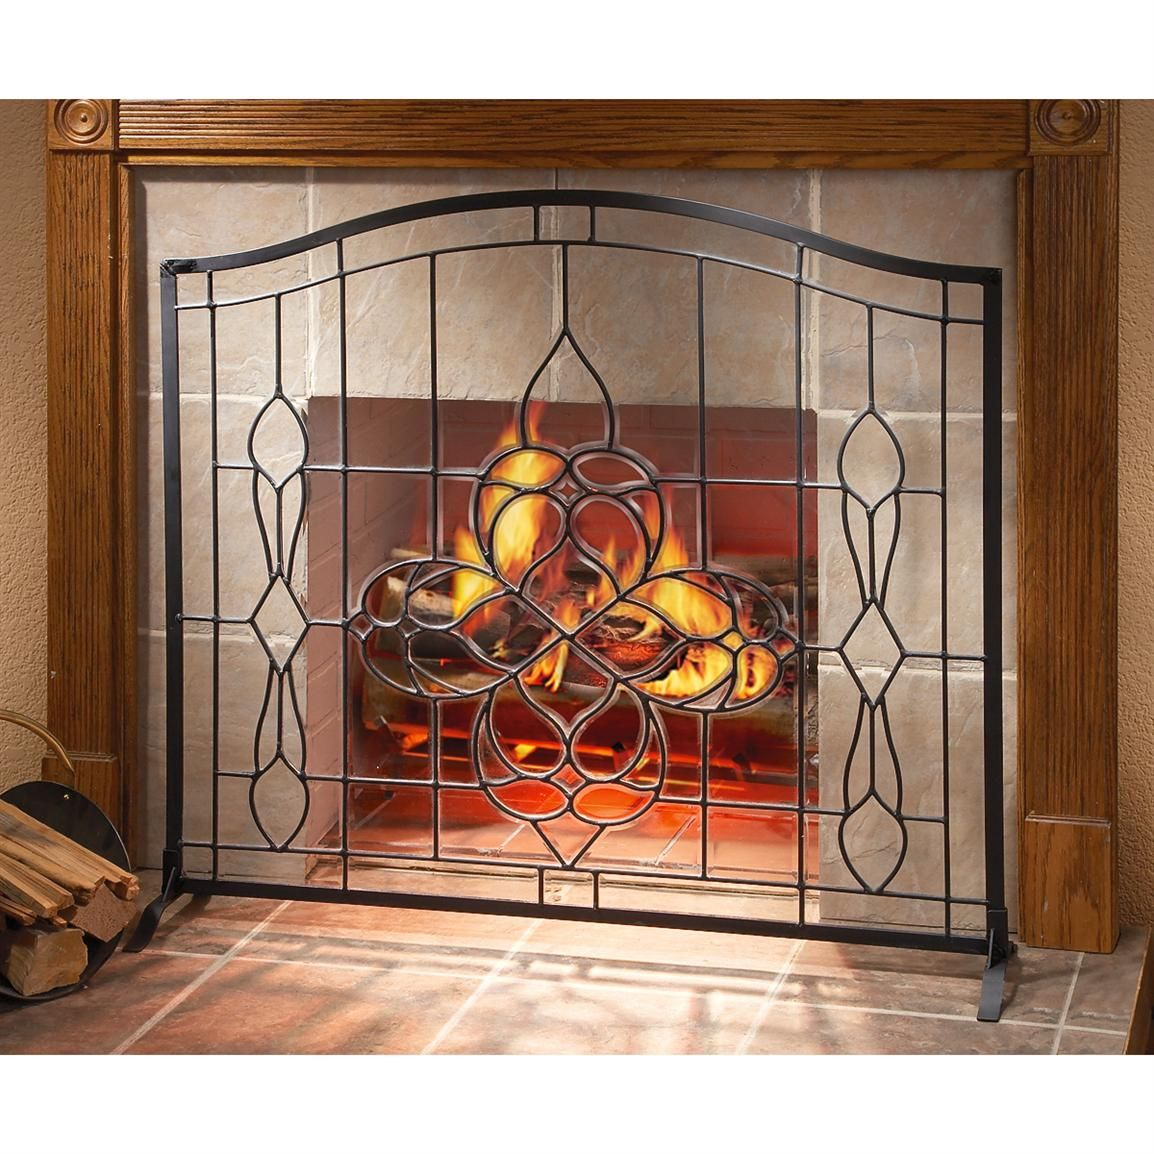 Glass fireplace screen and Screens